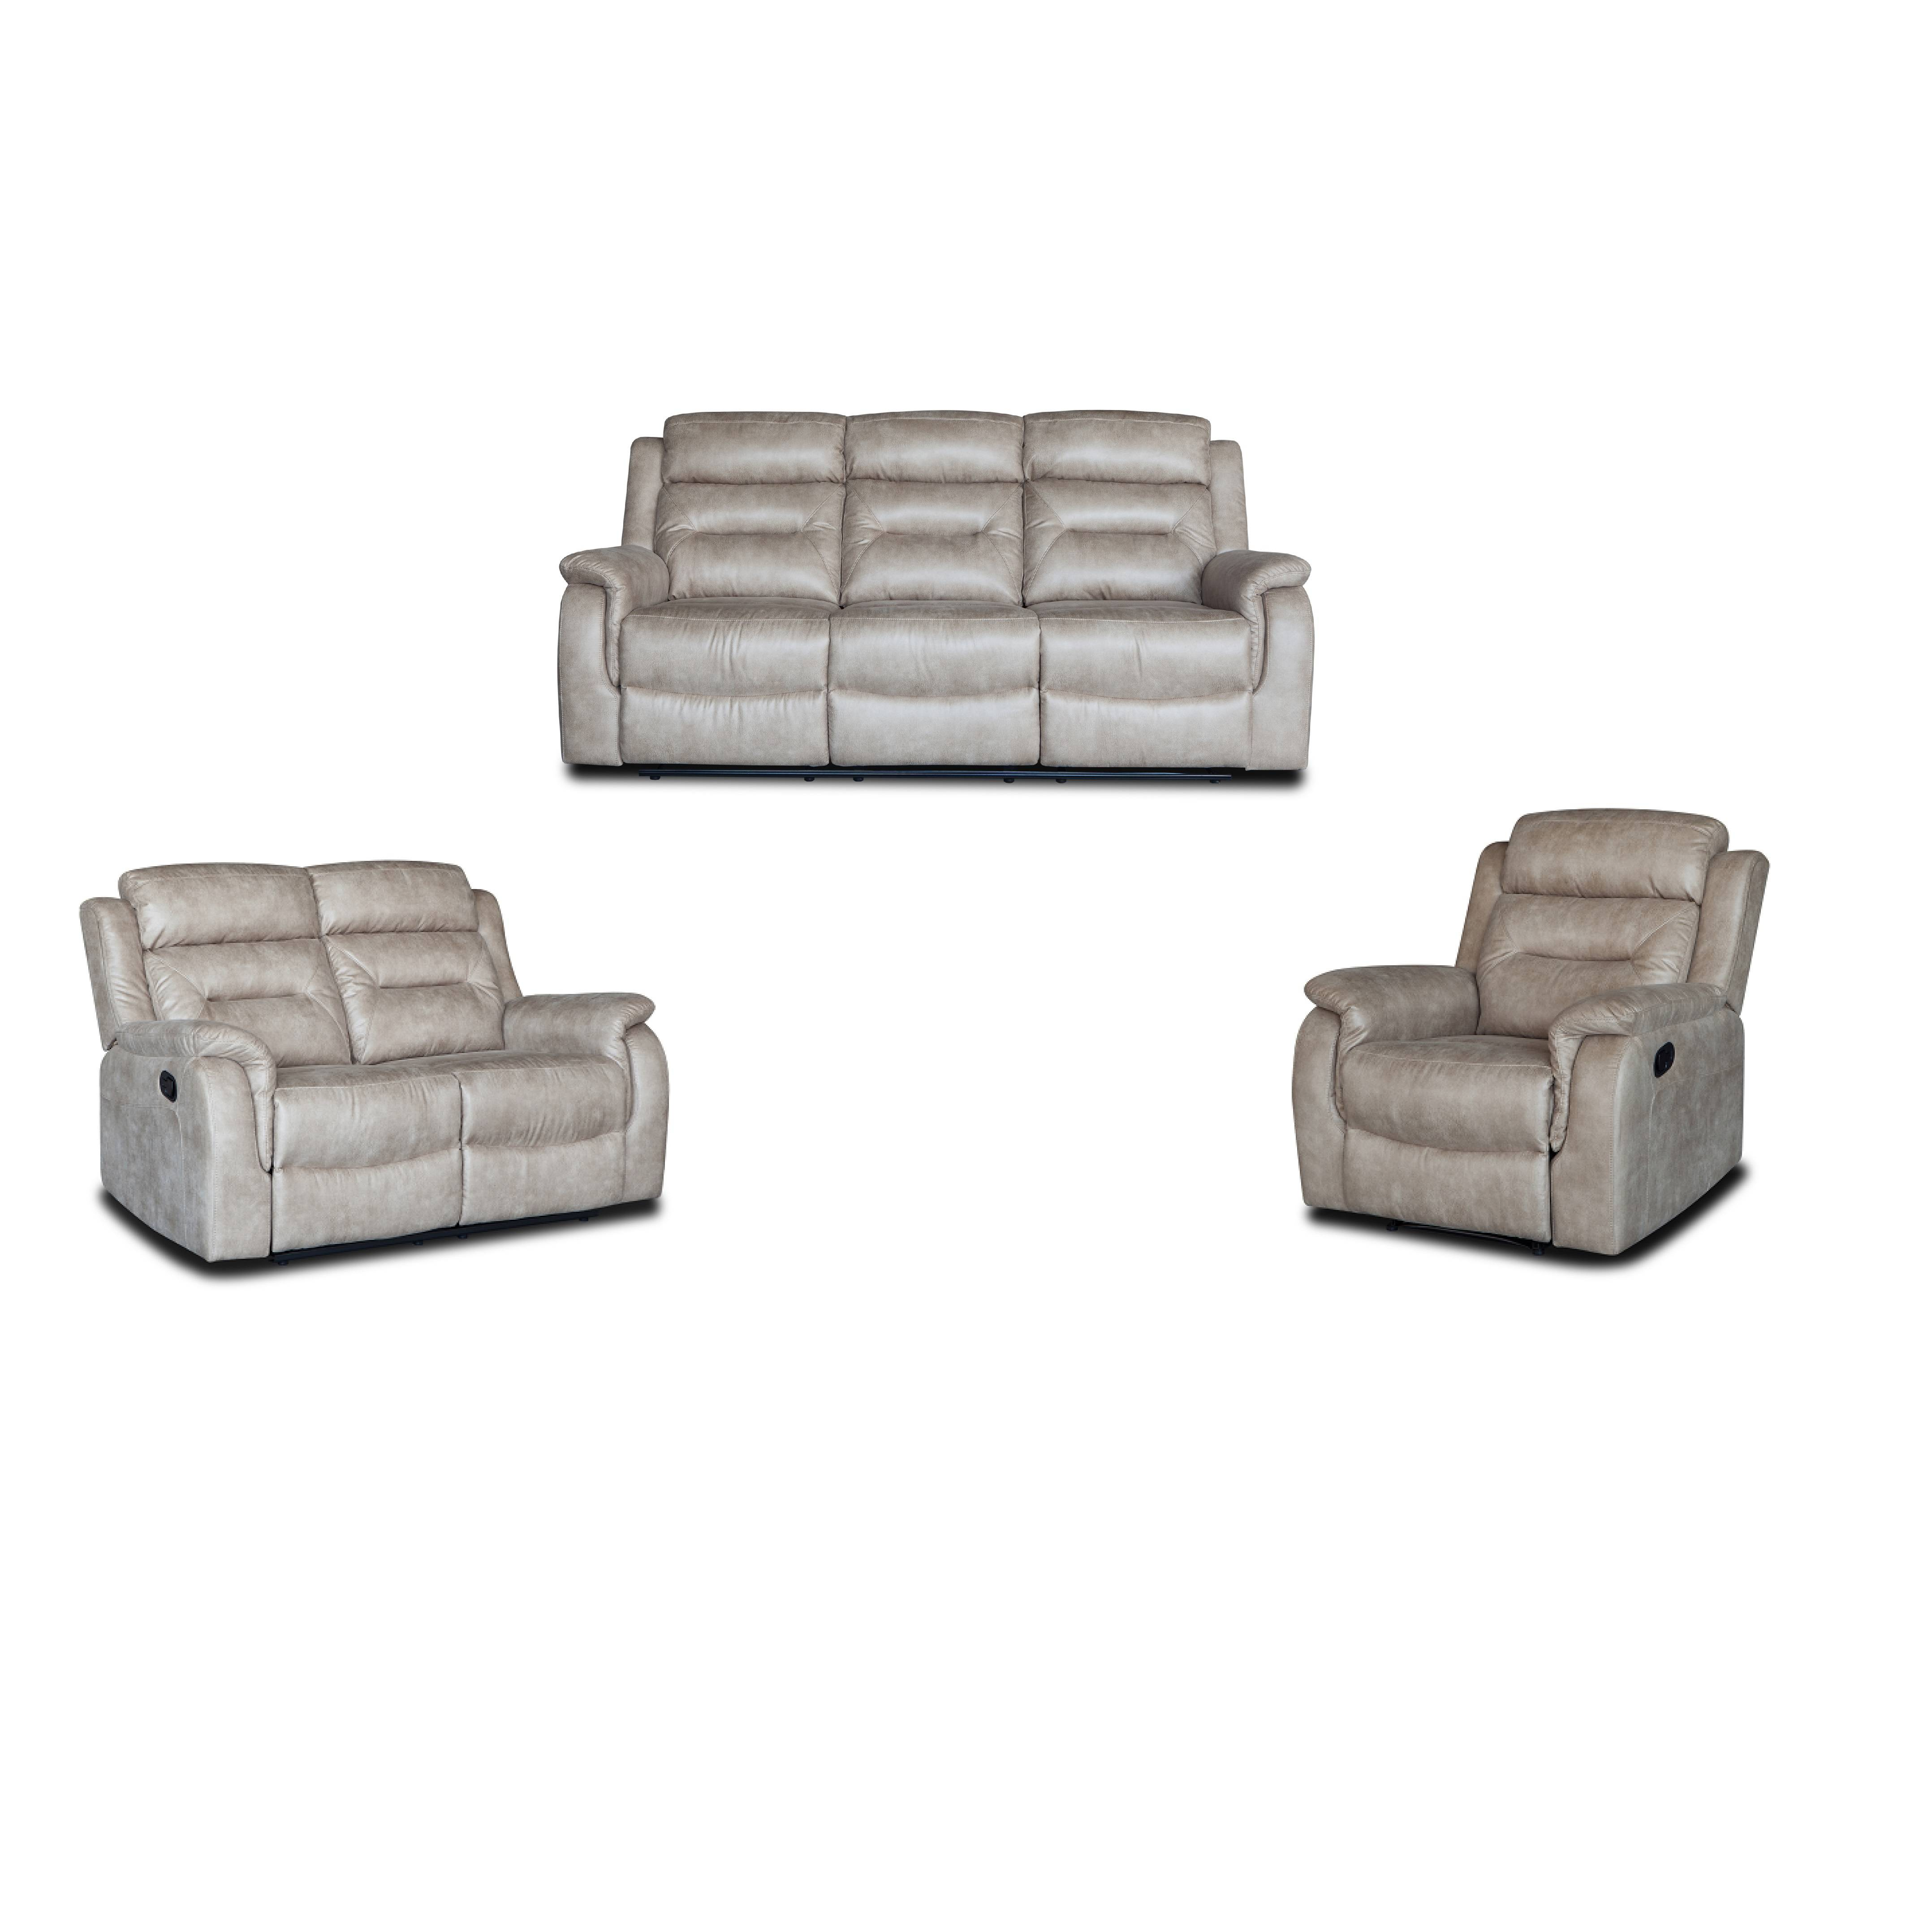 Wholesale cheap price real leather manual recliner sofa Featured Image